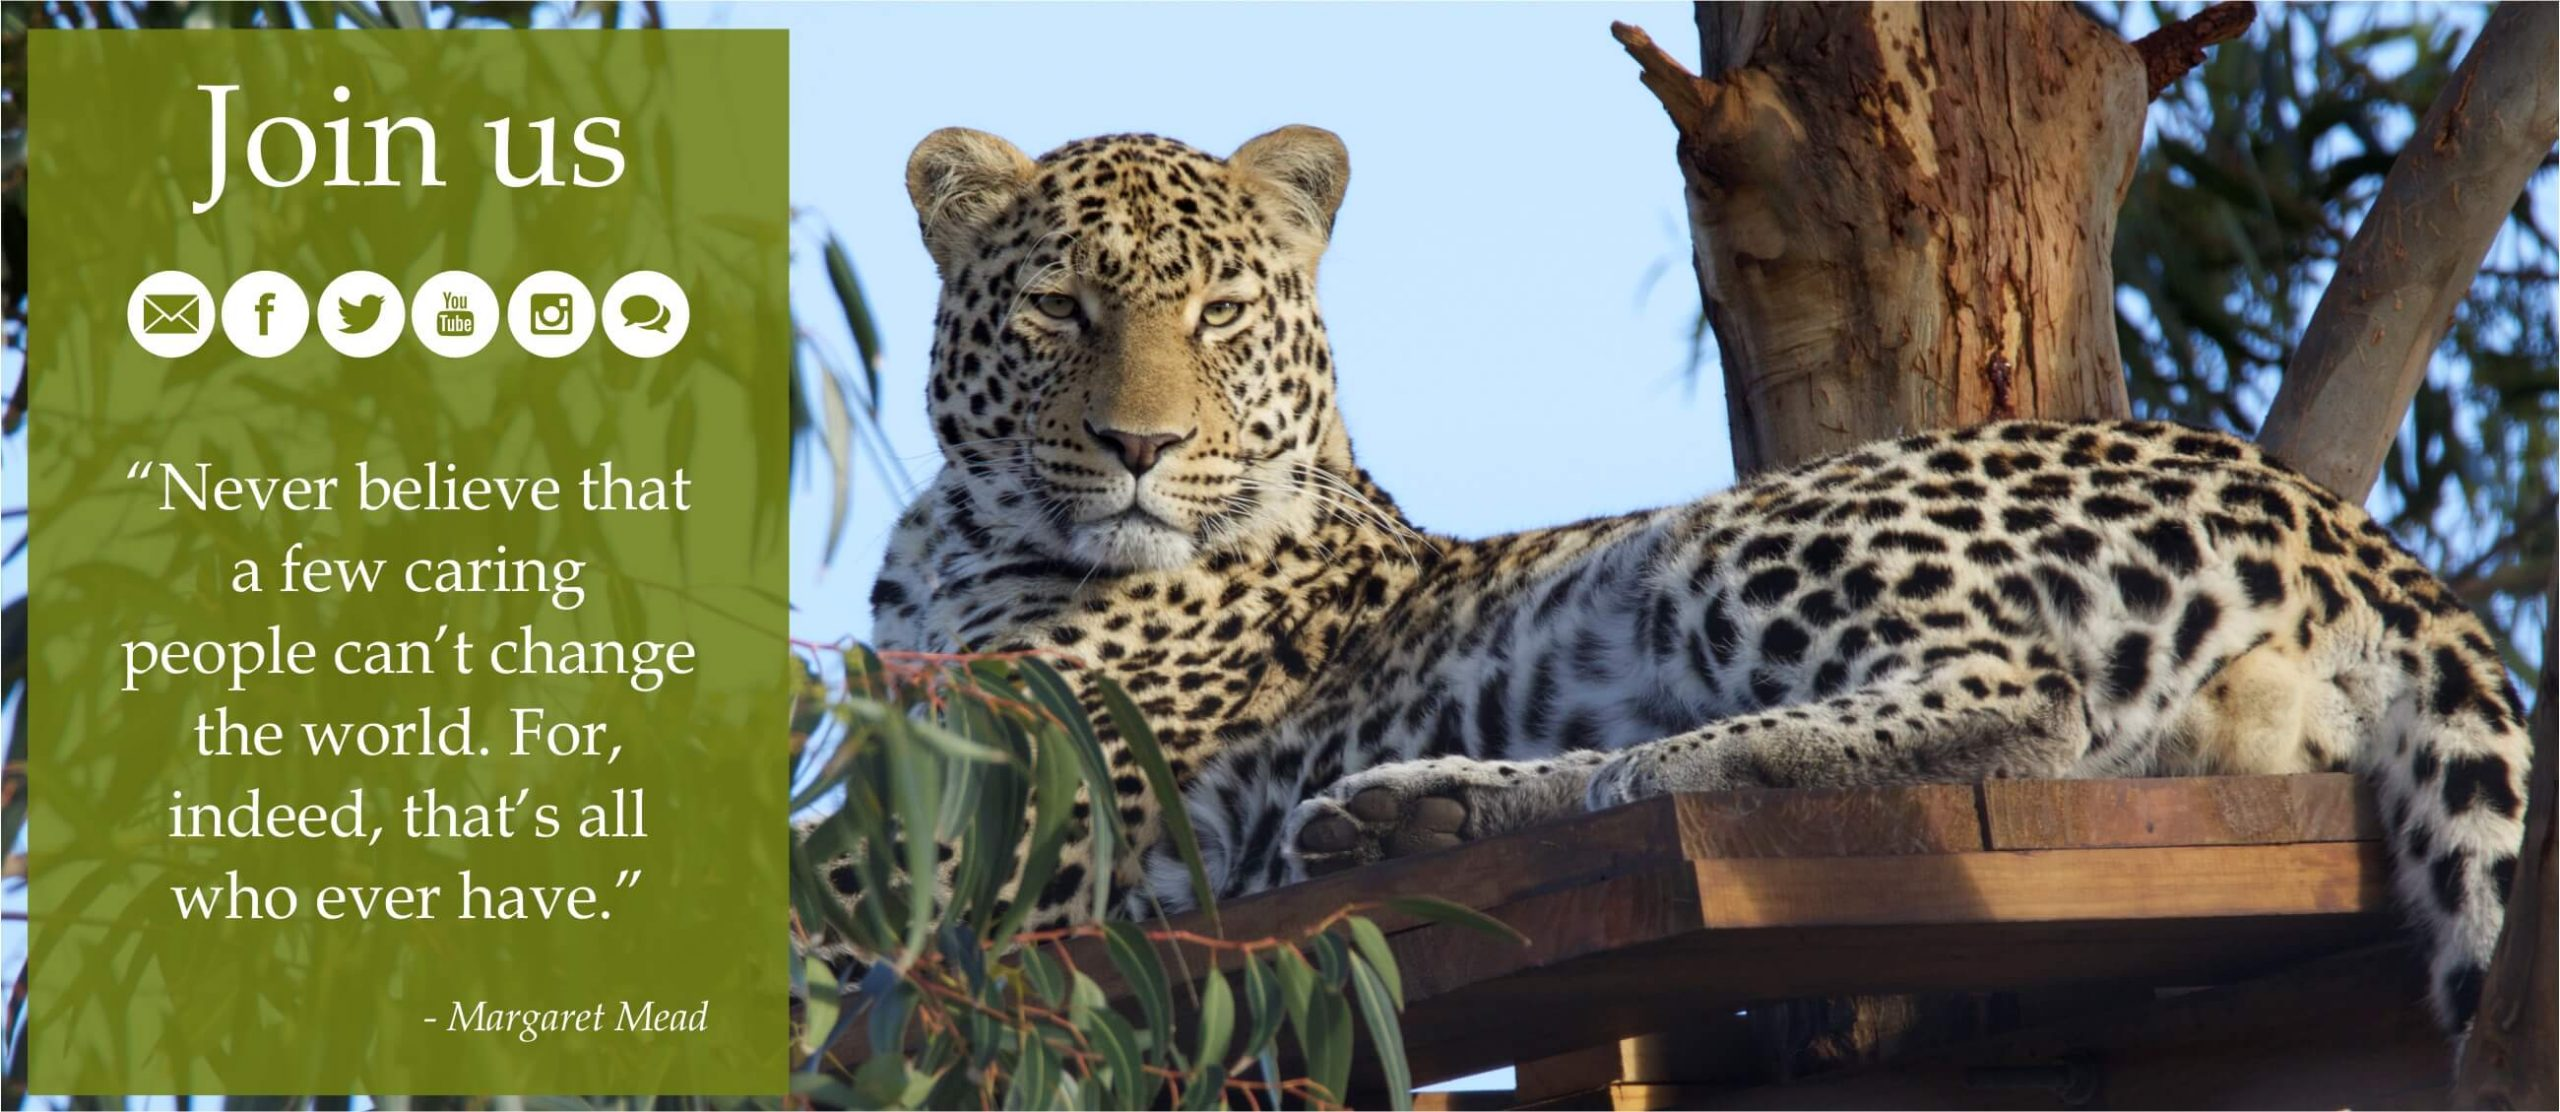 panthera-africa-join-us